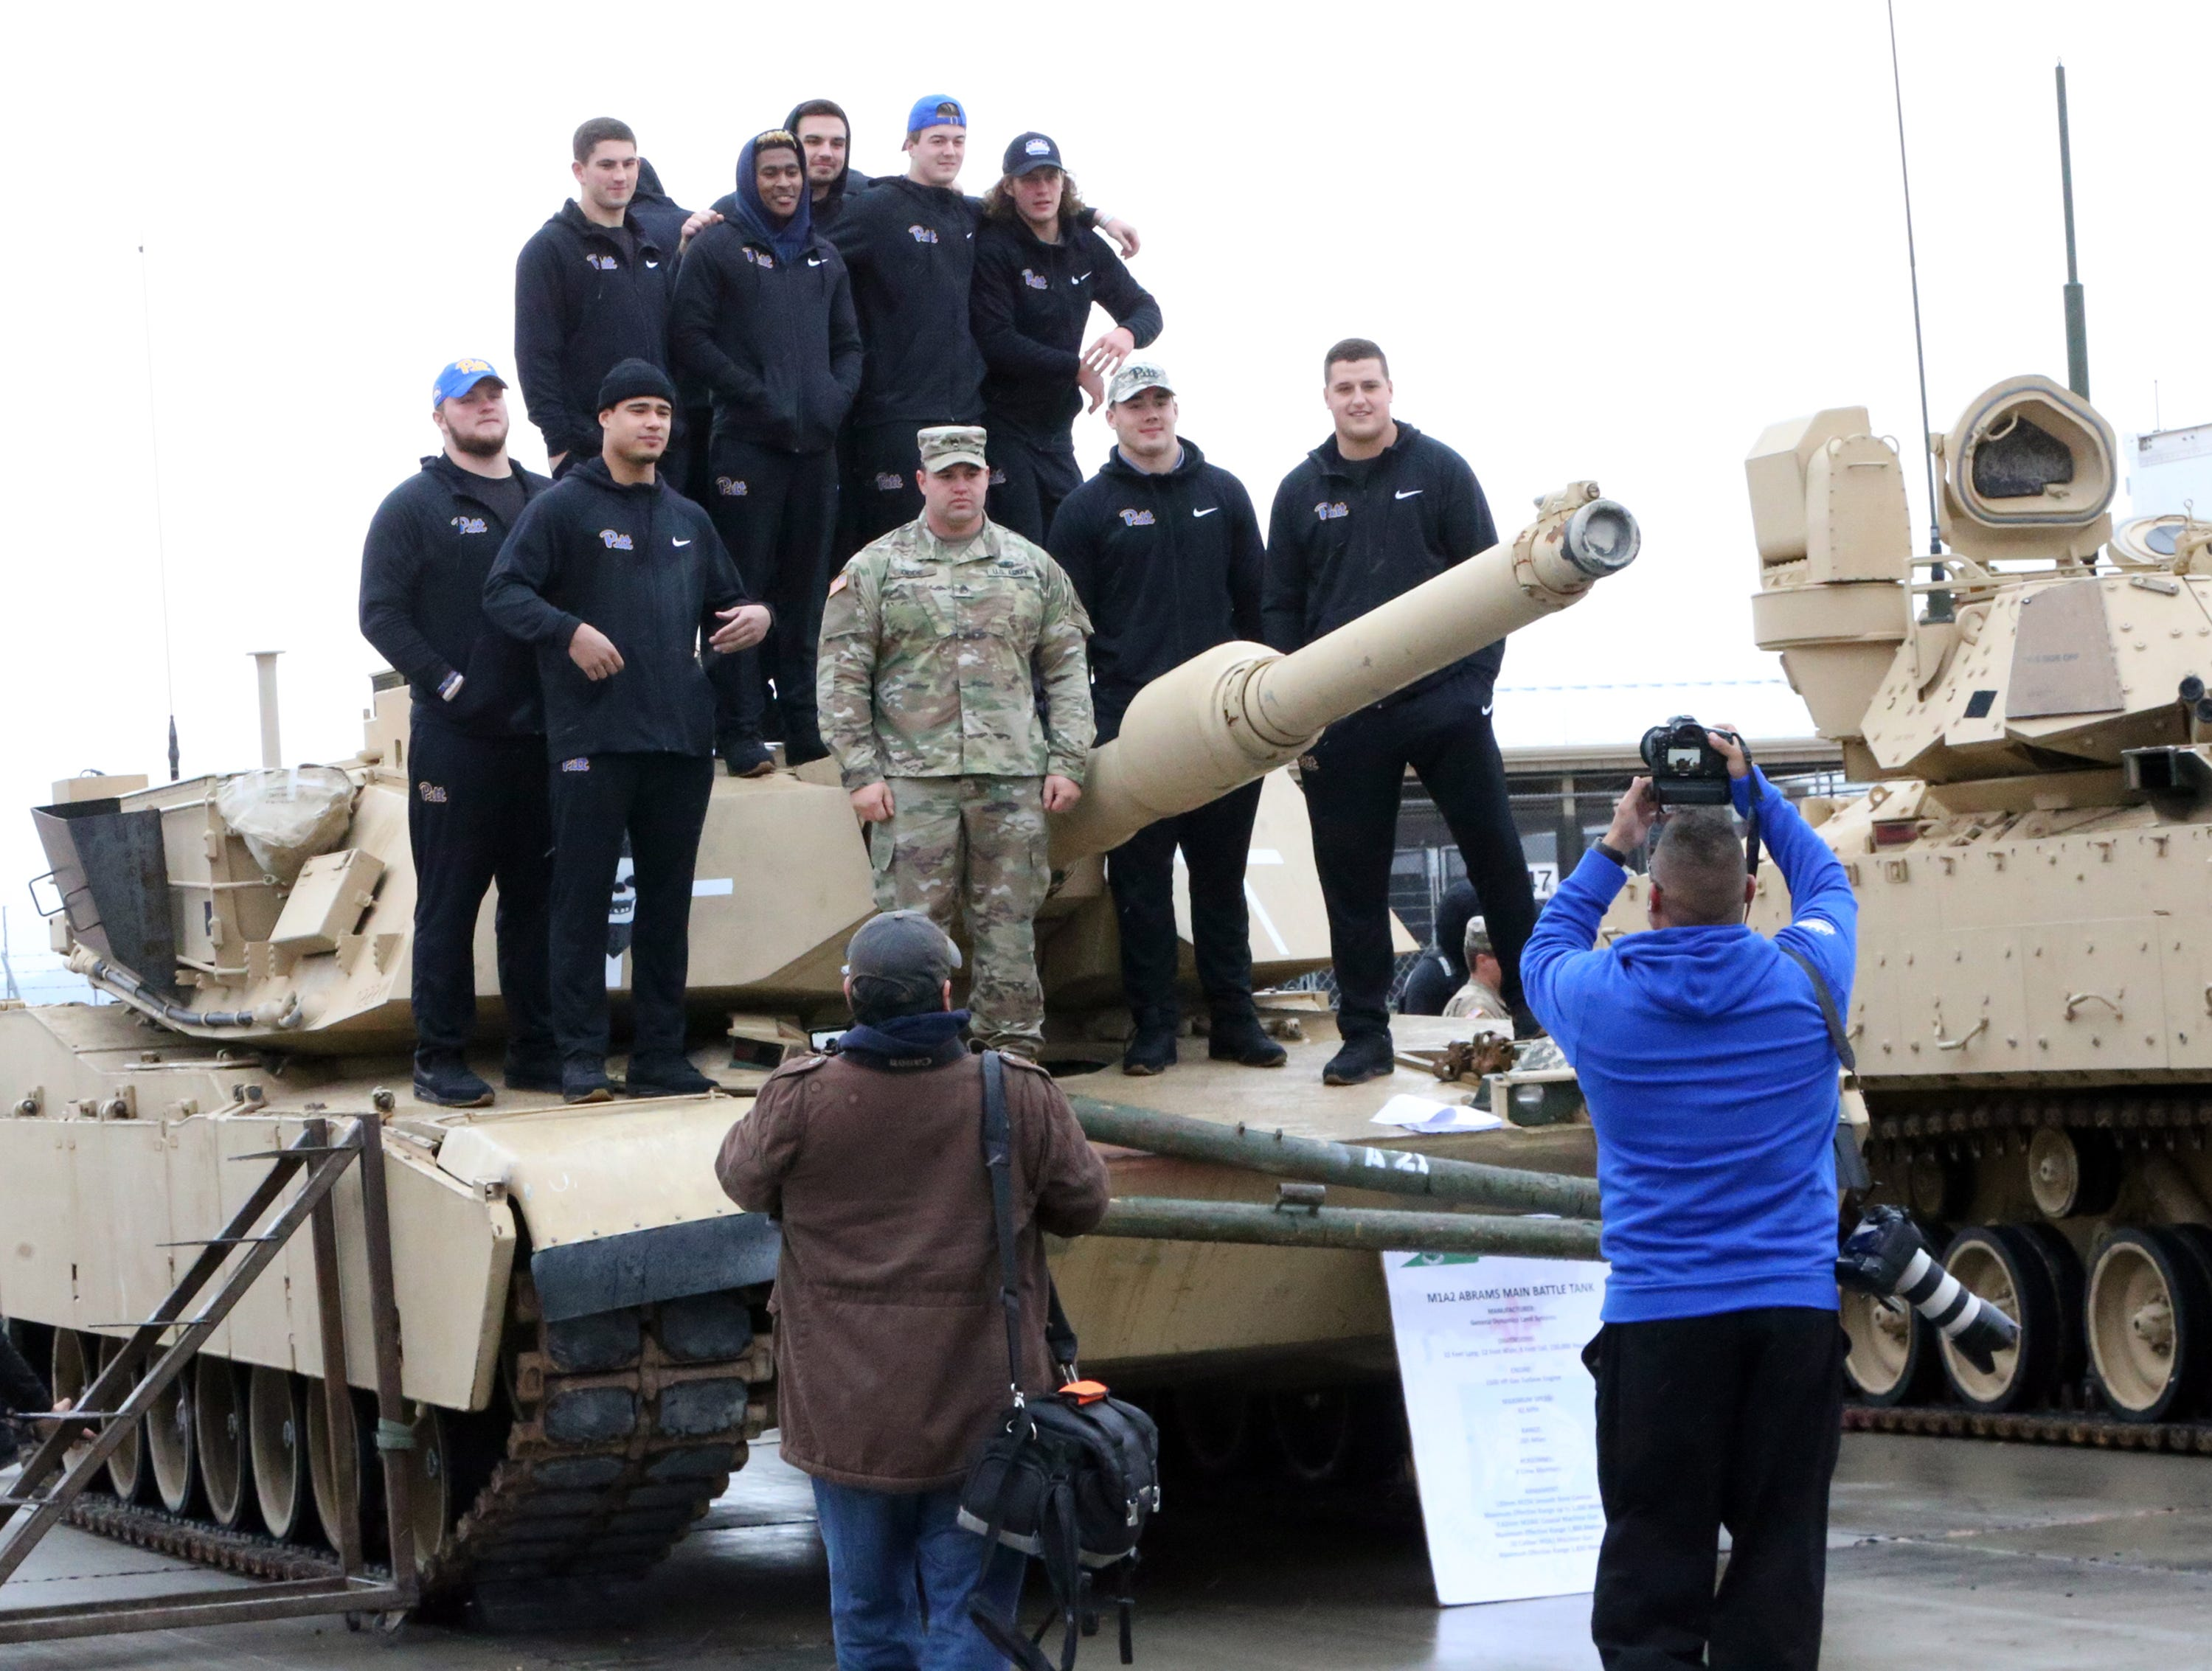 University of Pittsburgh players pose for pictures with a Fort Bliss soldier atop an M1A2 Abrams main battle tank during a visit to Fort Bliss Friday.